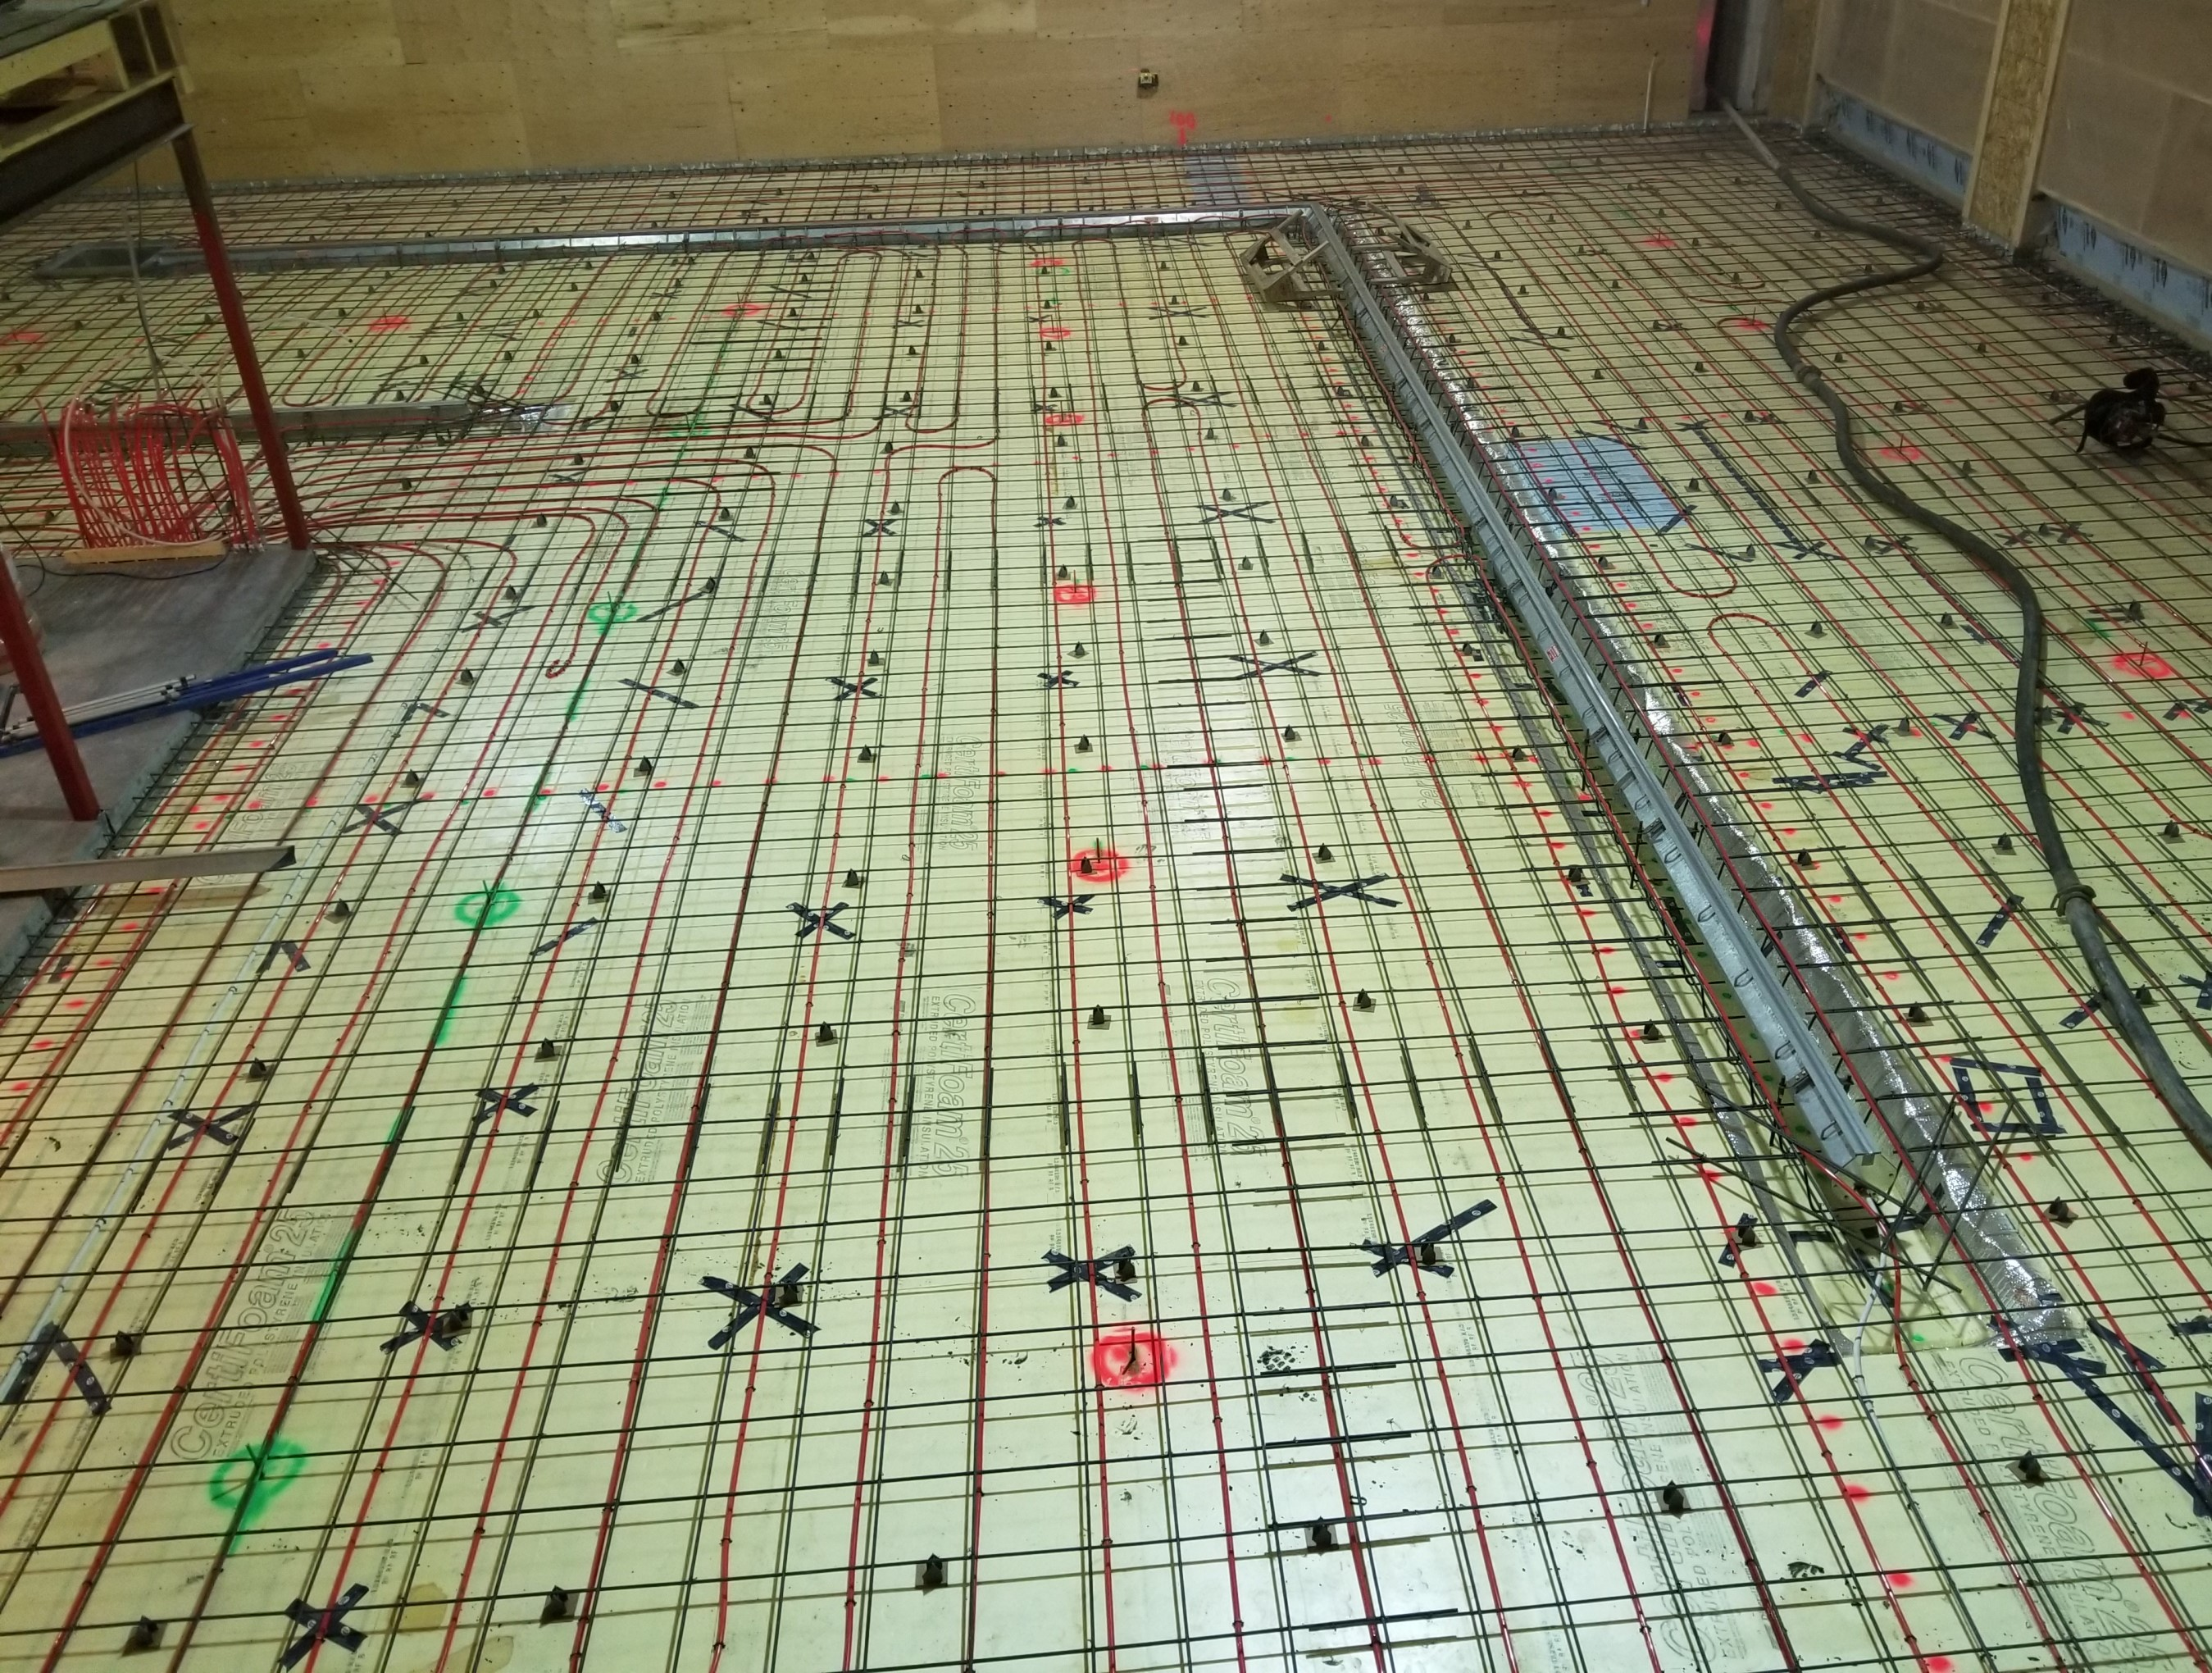 Prepped Firehall floor